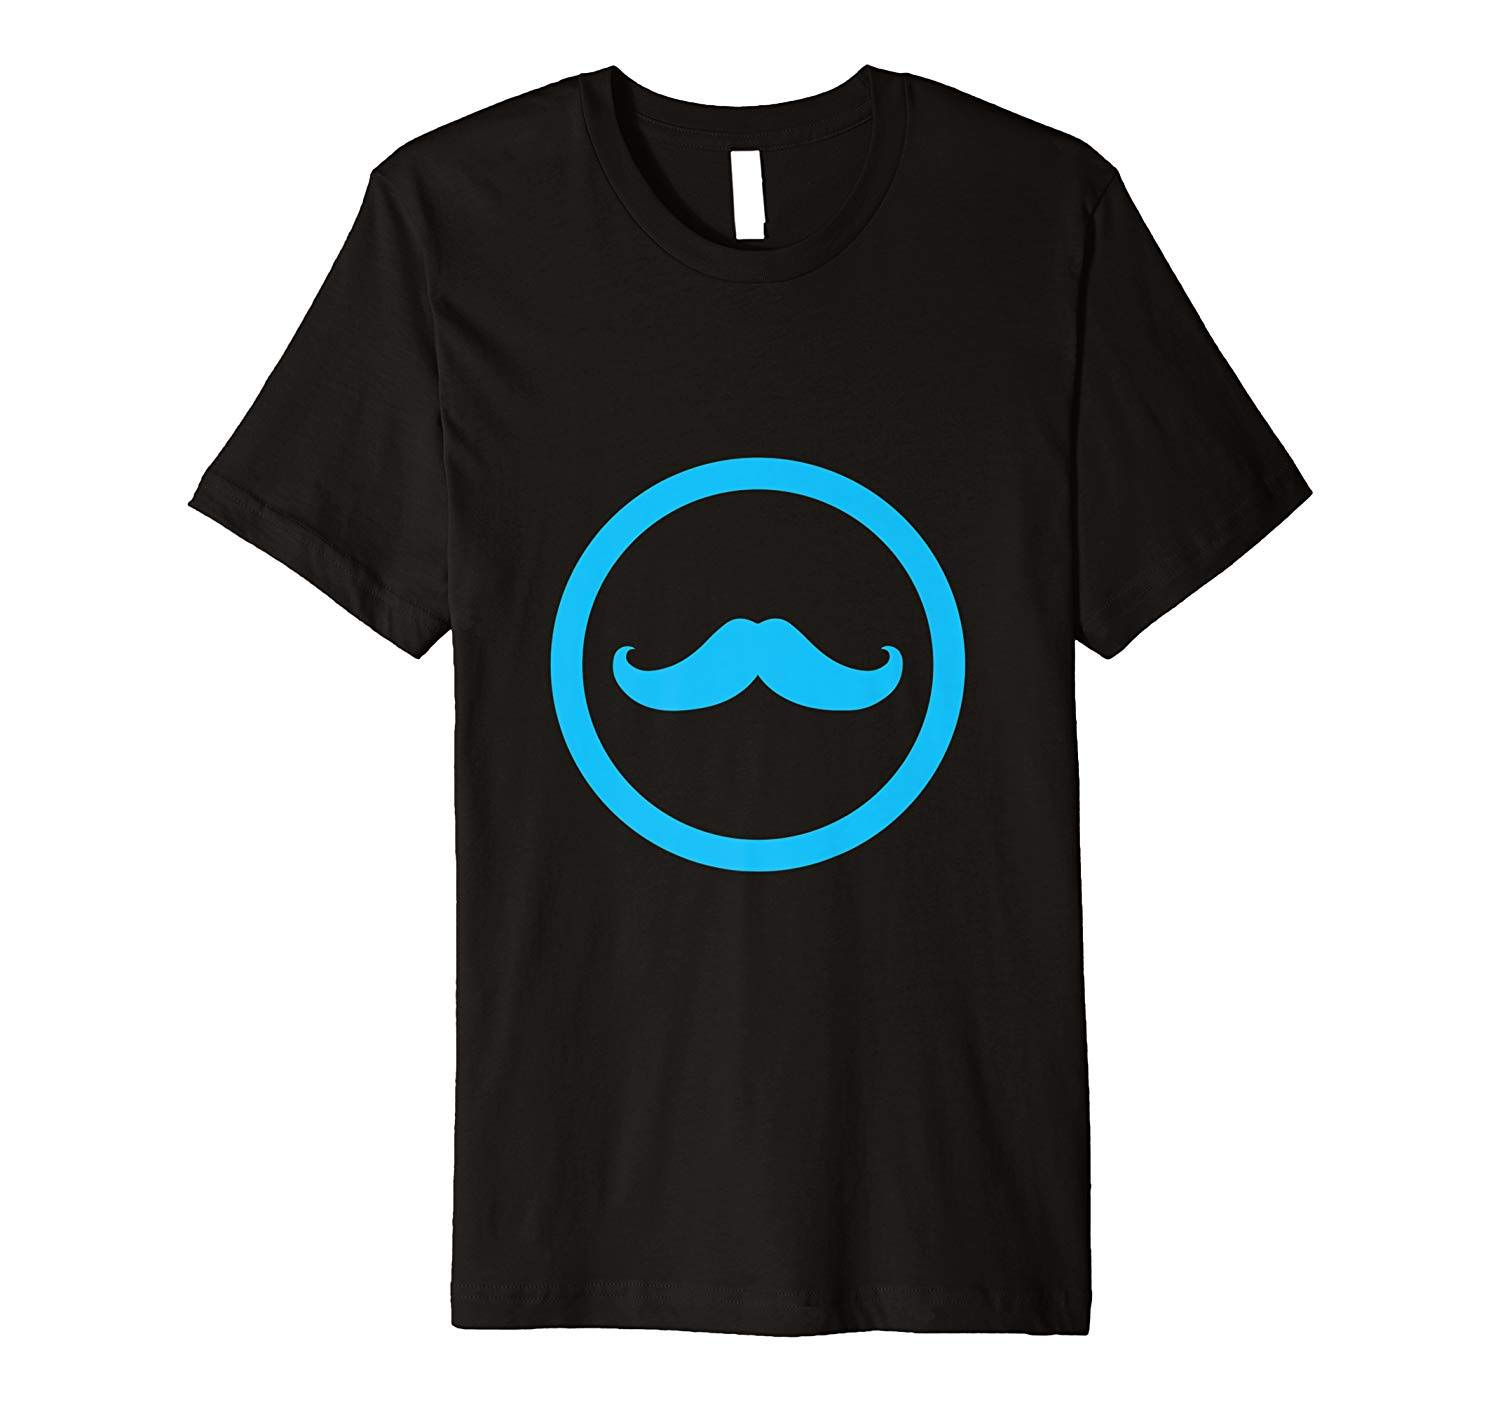 Black and Blue Mustache Shirt